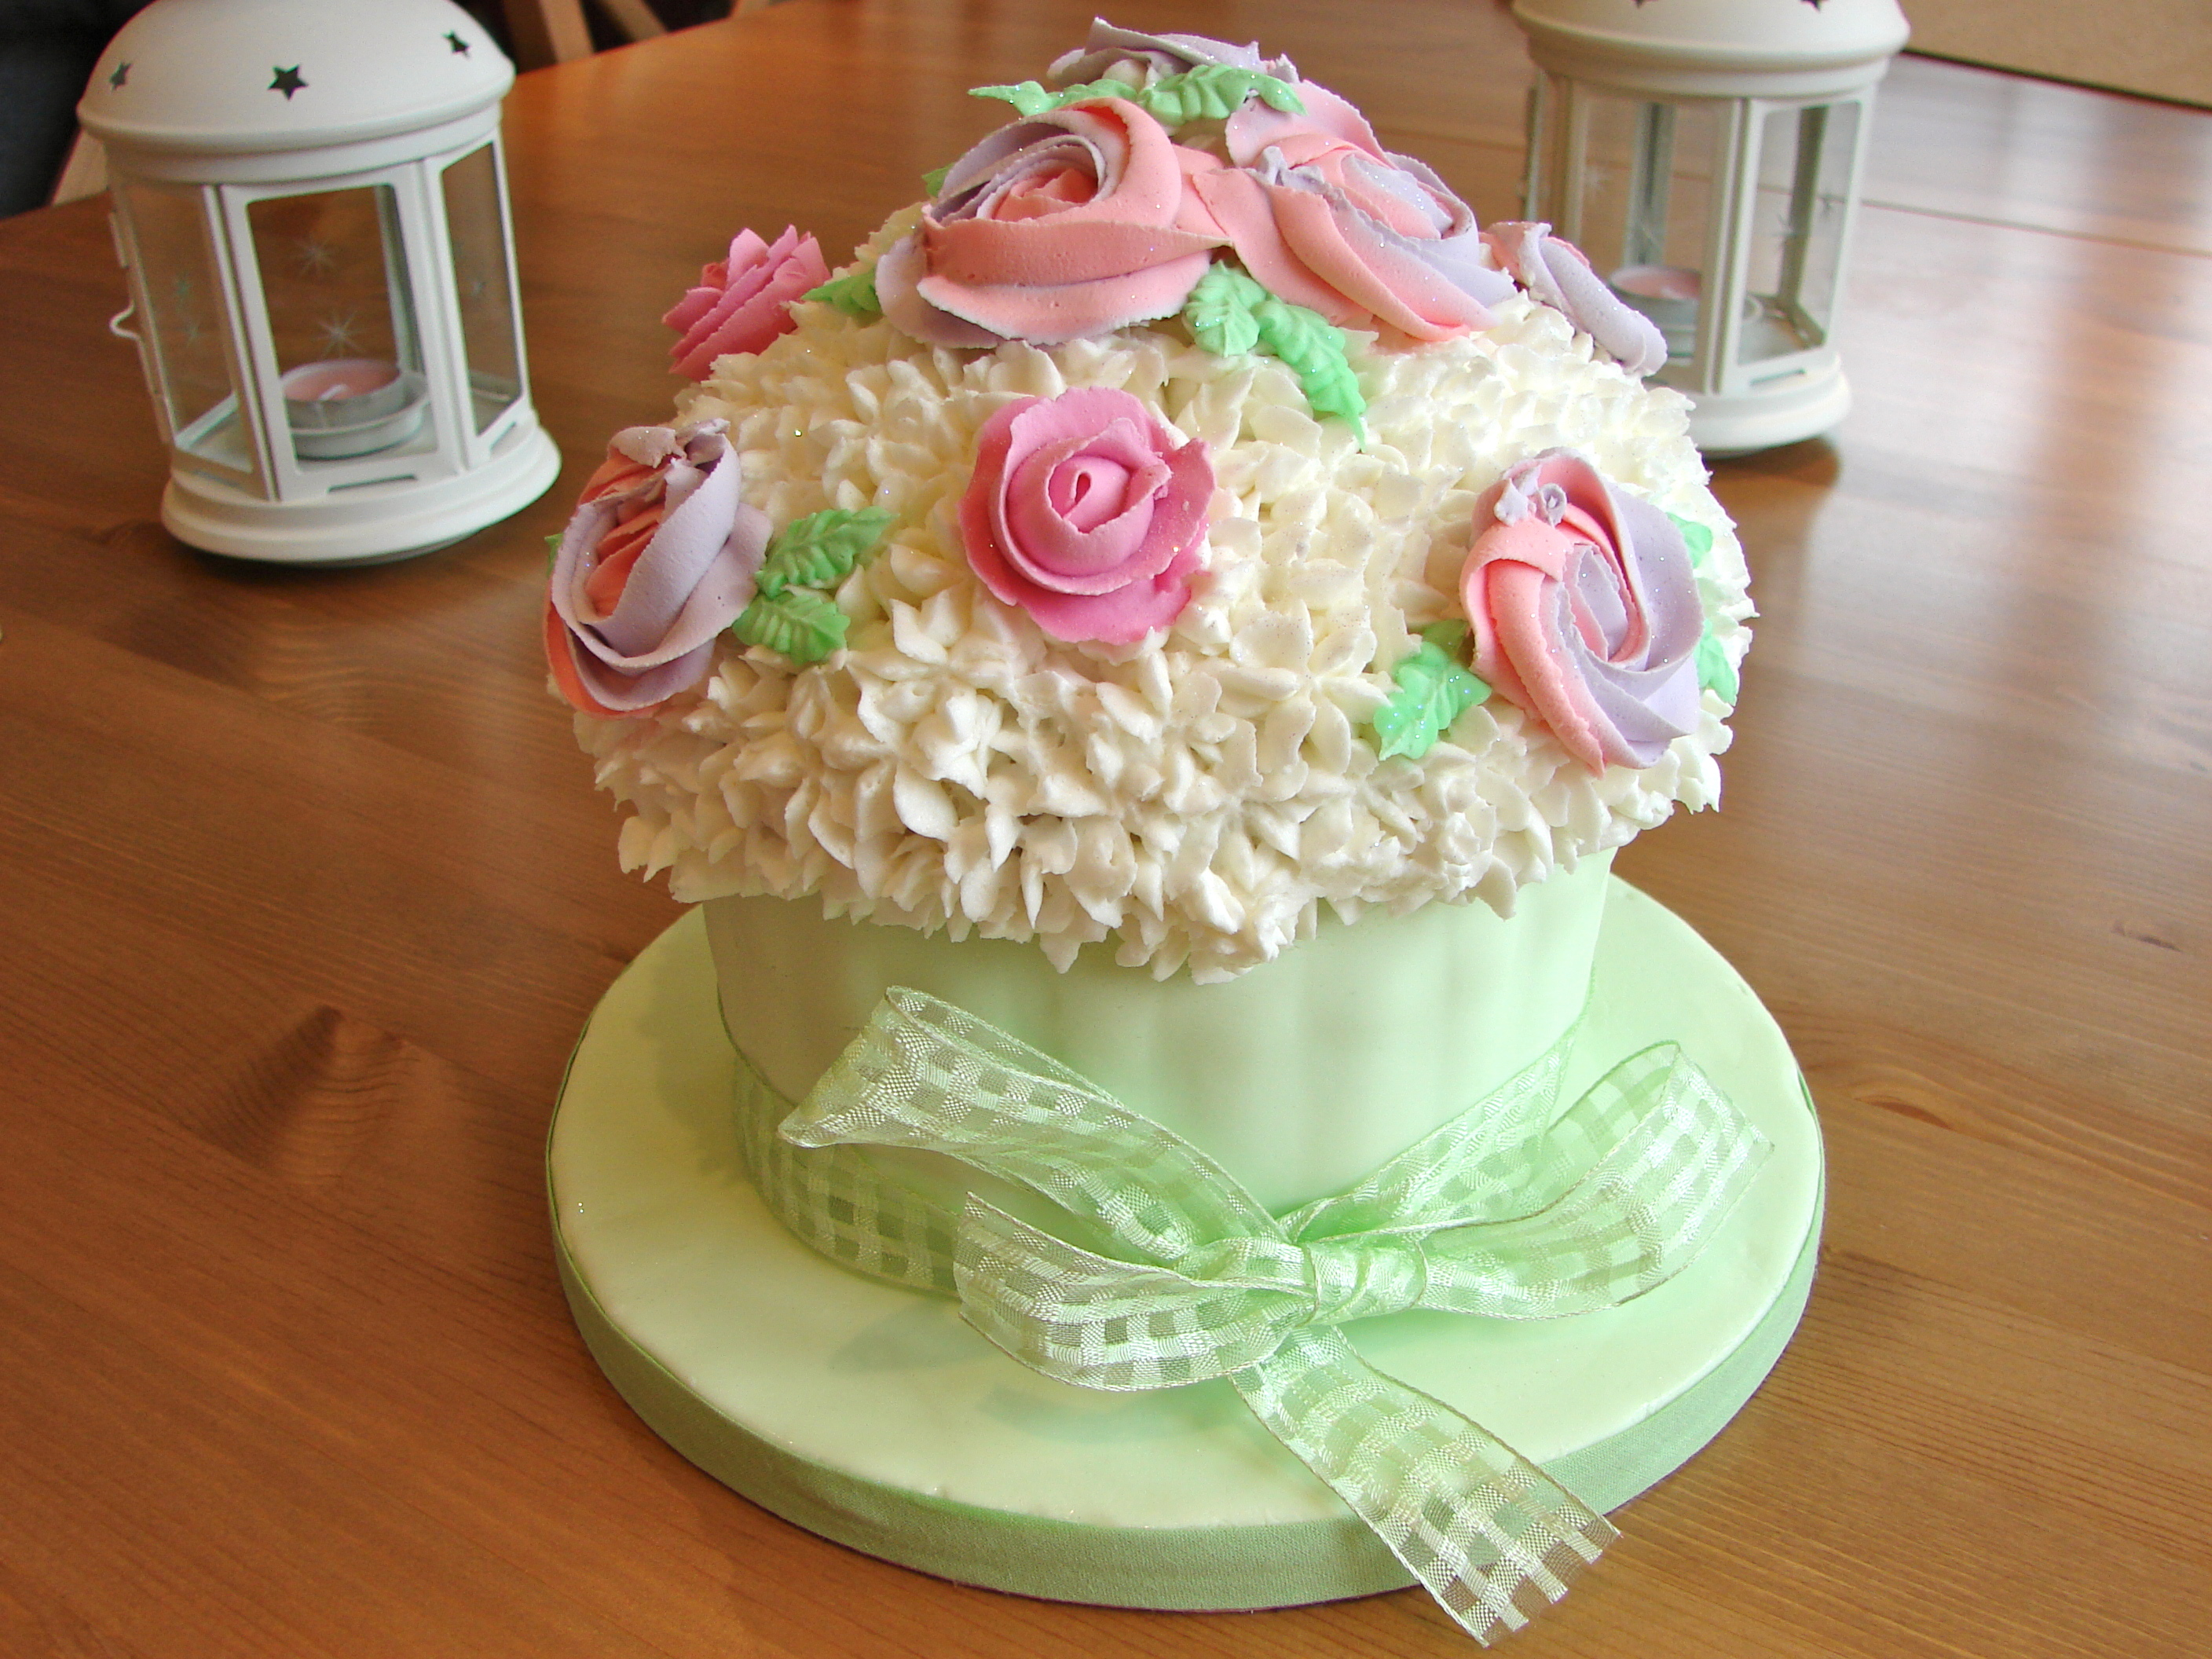 Cake Decorating Ideas Cupcakes : 301 Moved Permanently